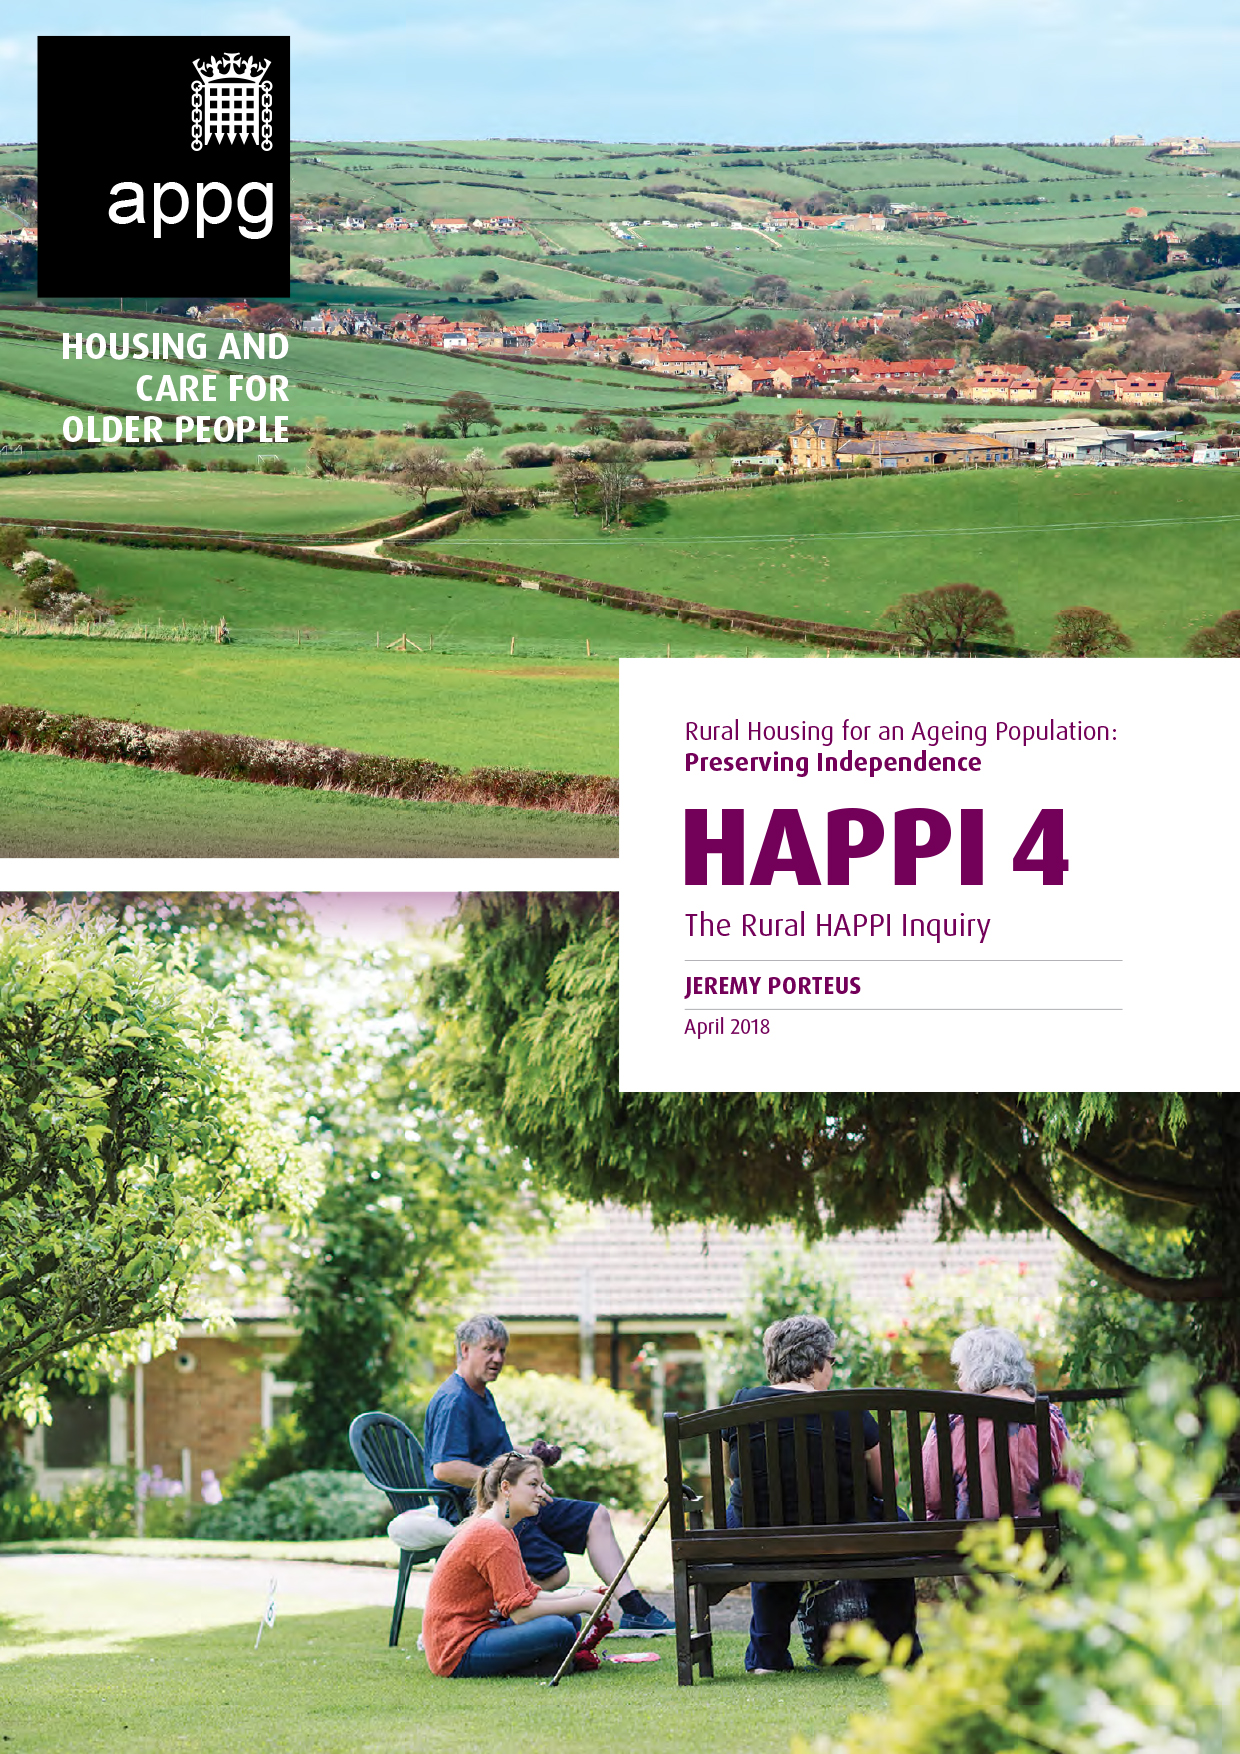 Rural Housing for an Ageing Population: Preserving Independence (HAPPI 4)